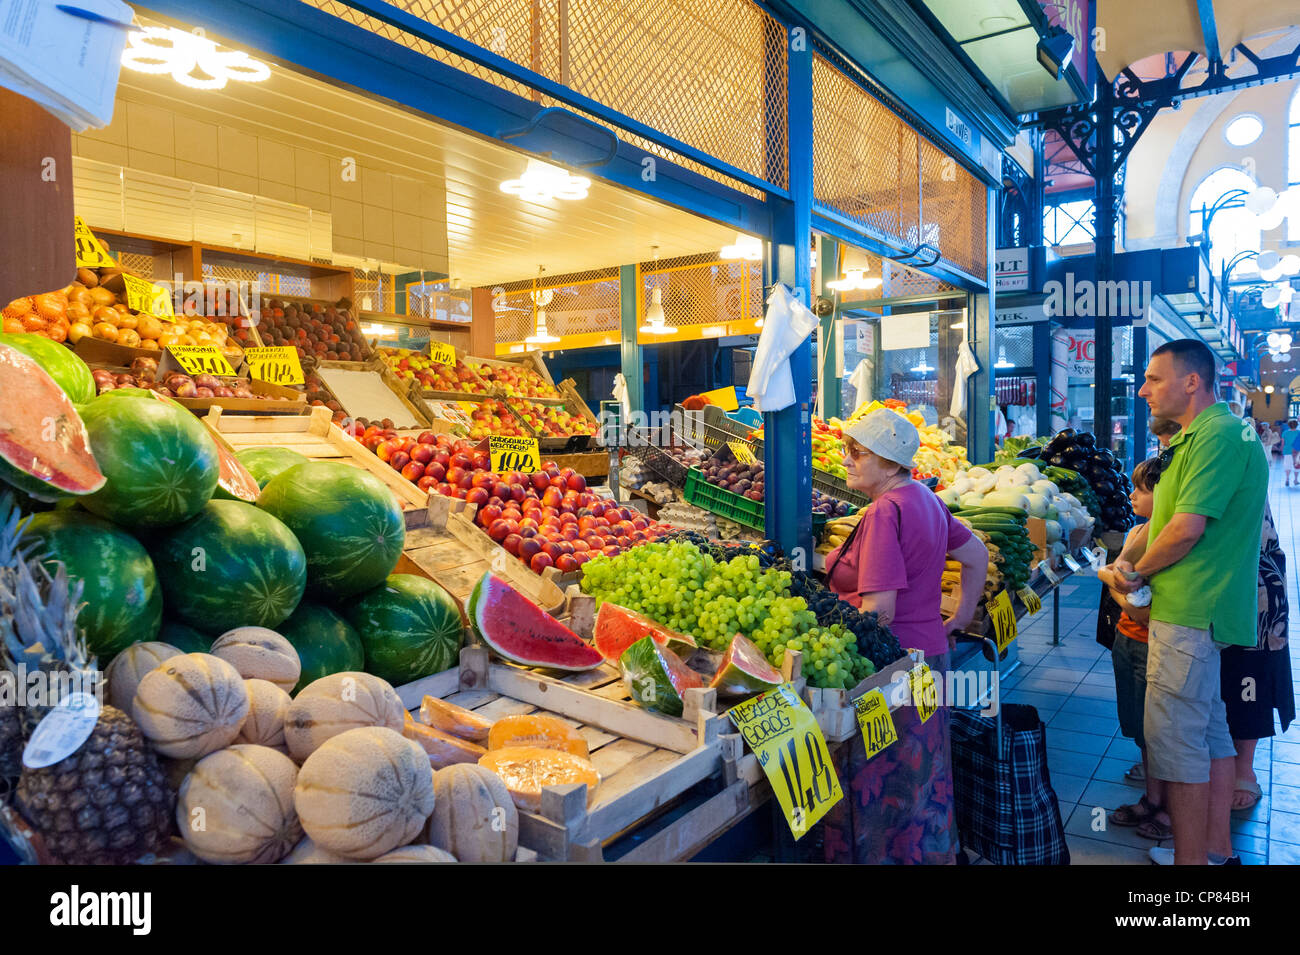 Stall in the Great Market Hall, Budapest, Hungary, Europe - Stock Image